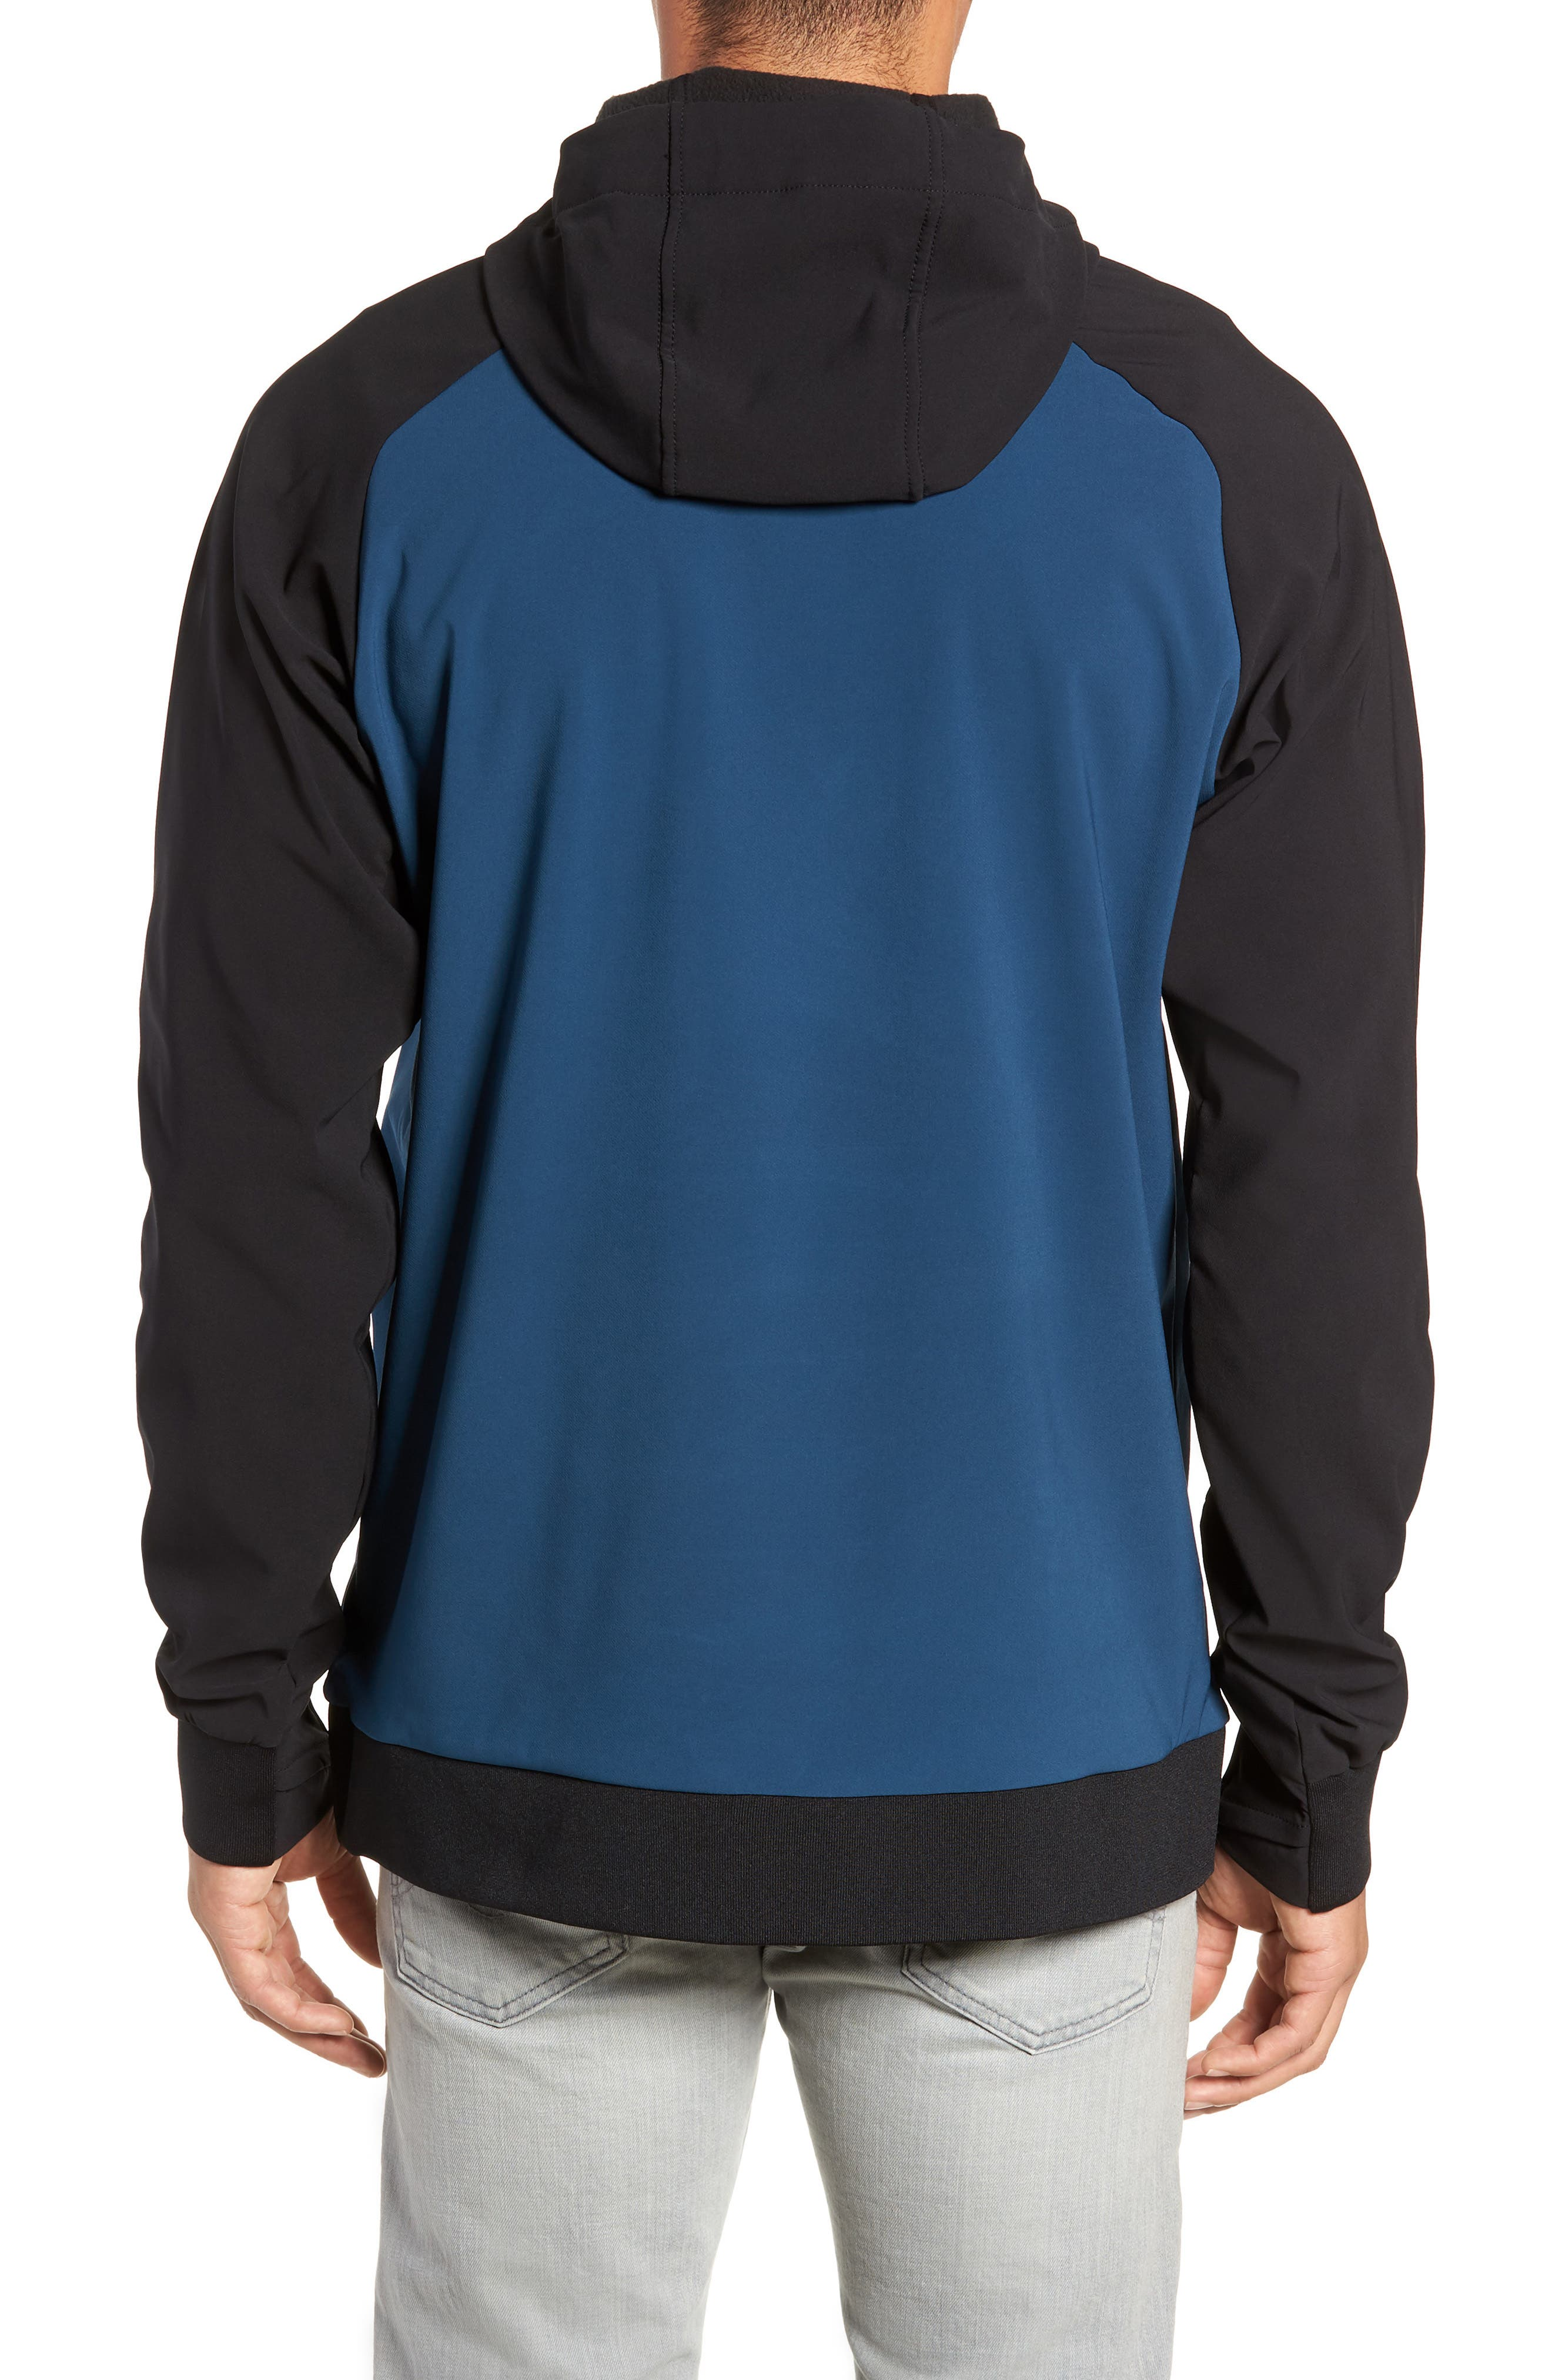 Tekno Pullover Hoodie,                             Alternate thumbnail 2, color,                             BLUE WING TEAL/ TNF BLACK